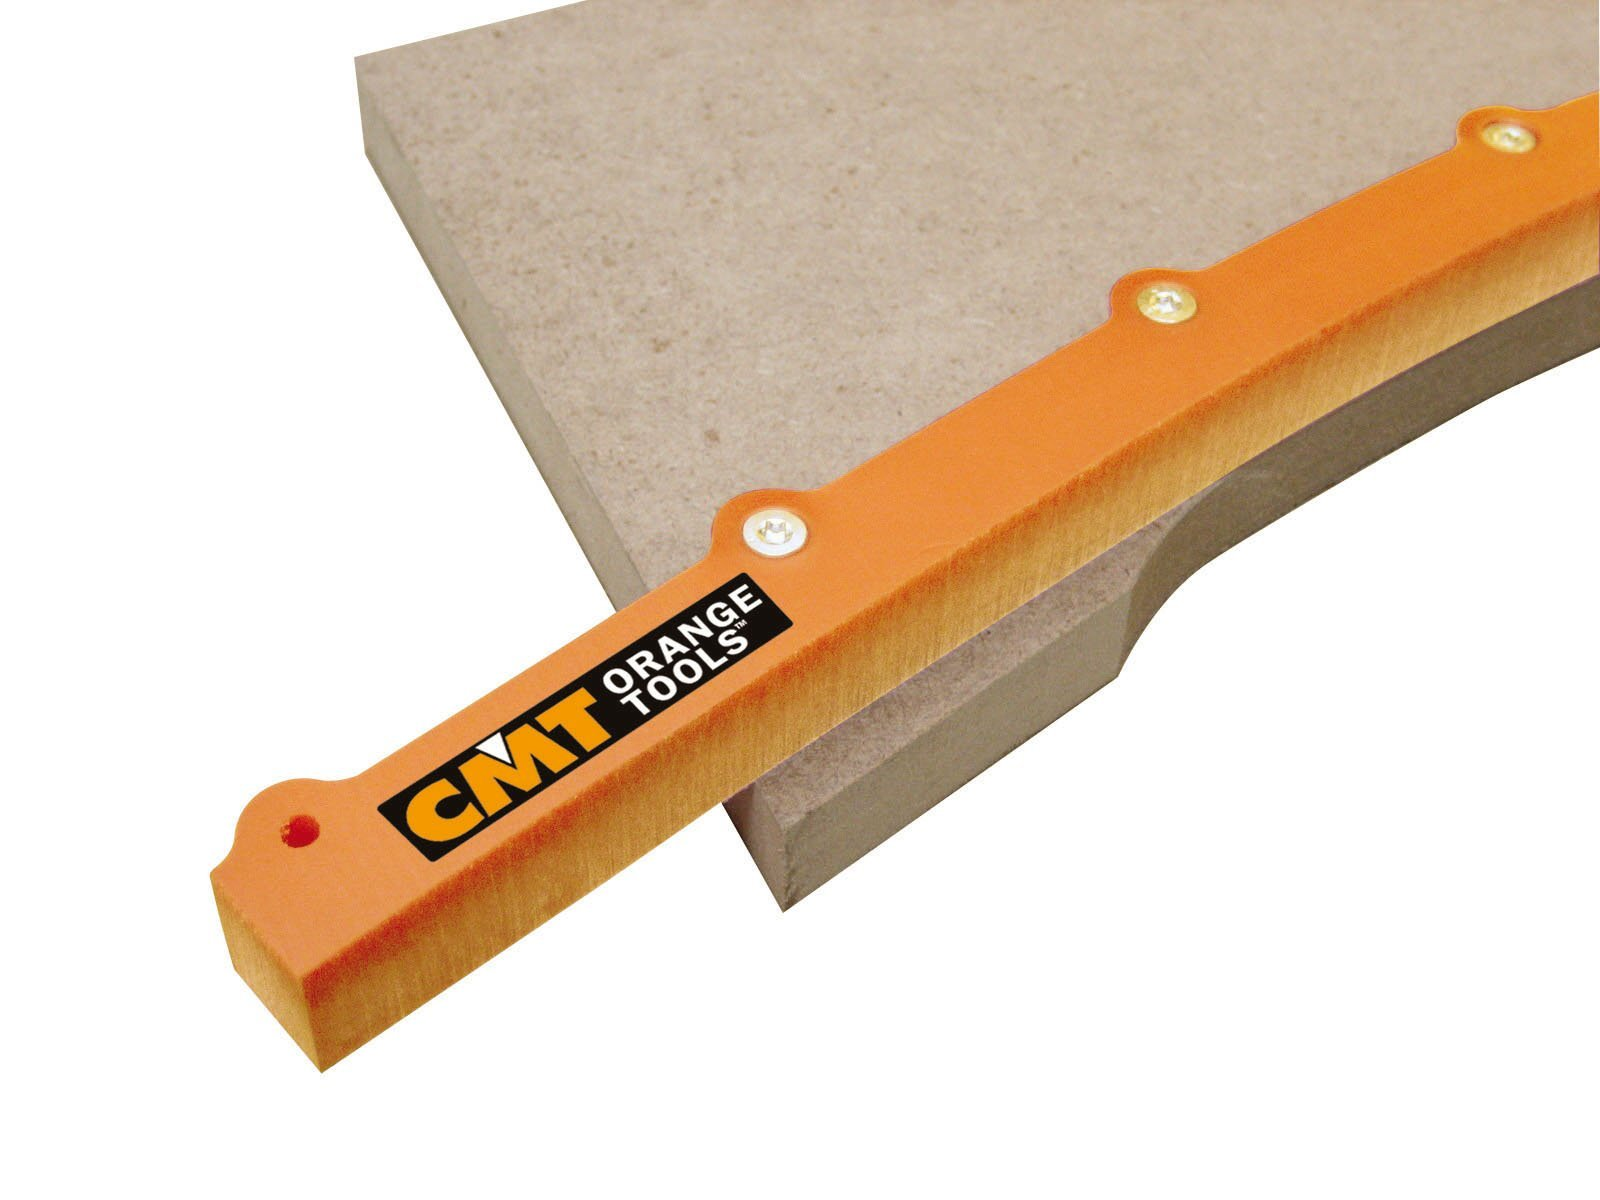 CMT TMP-1000 Flexible Template for Curved and Arched Routing, 23/32 X 23/32-Inch by CMT